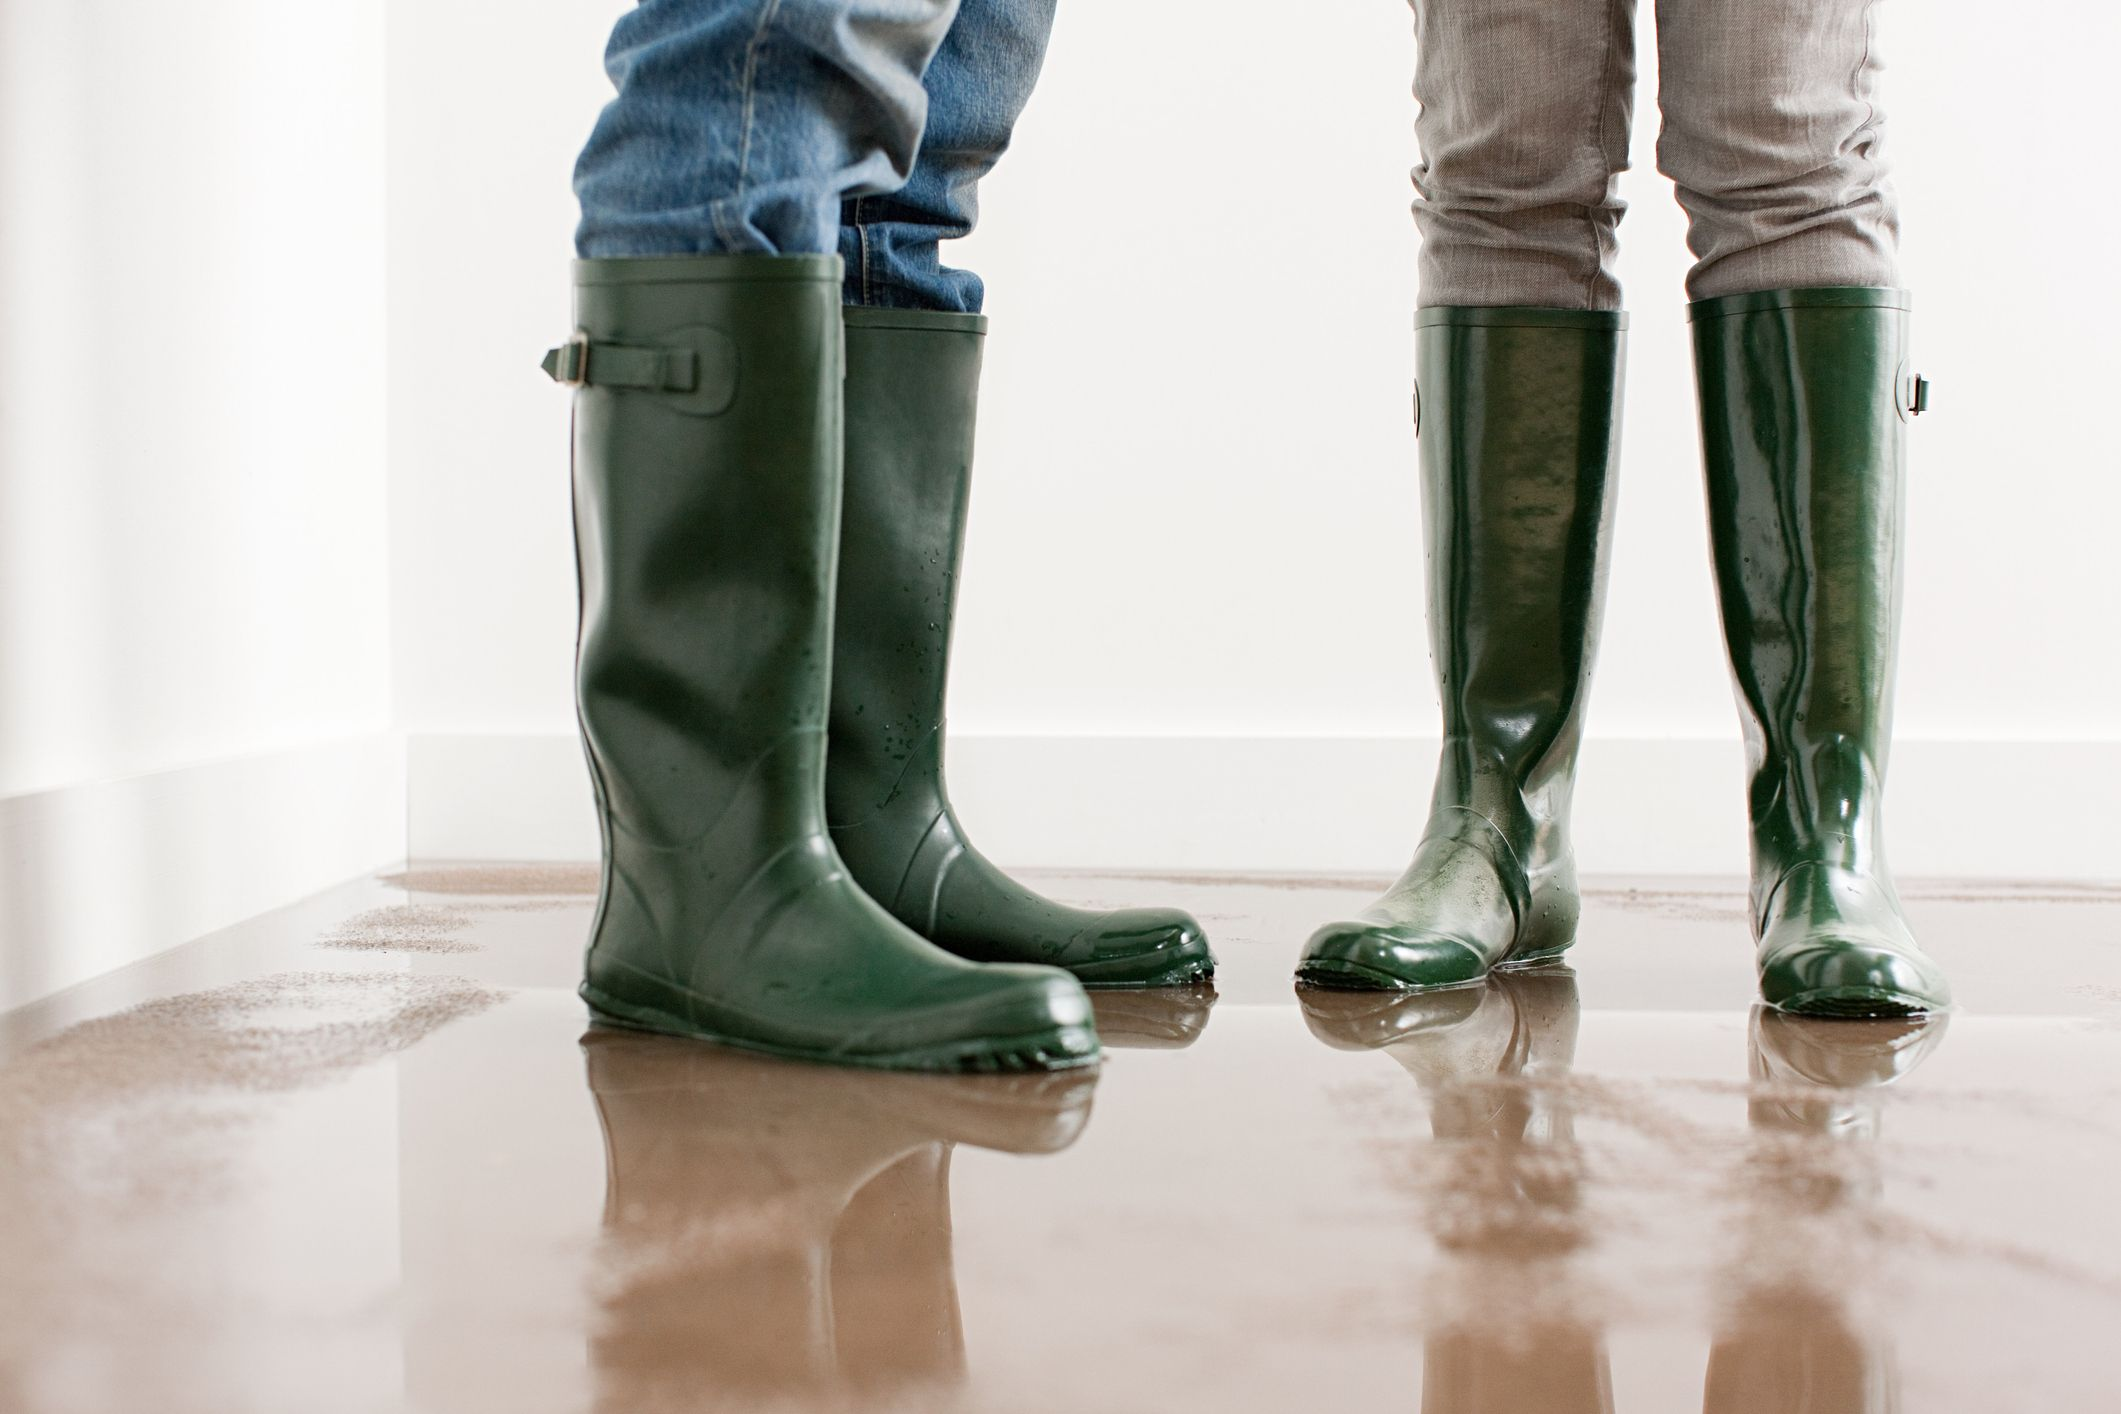 Your Basement Just Flooded! Here's What To Do.